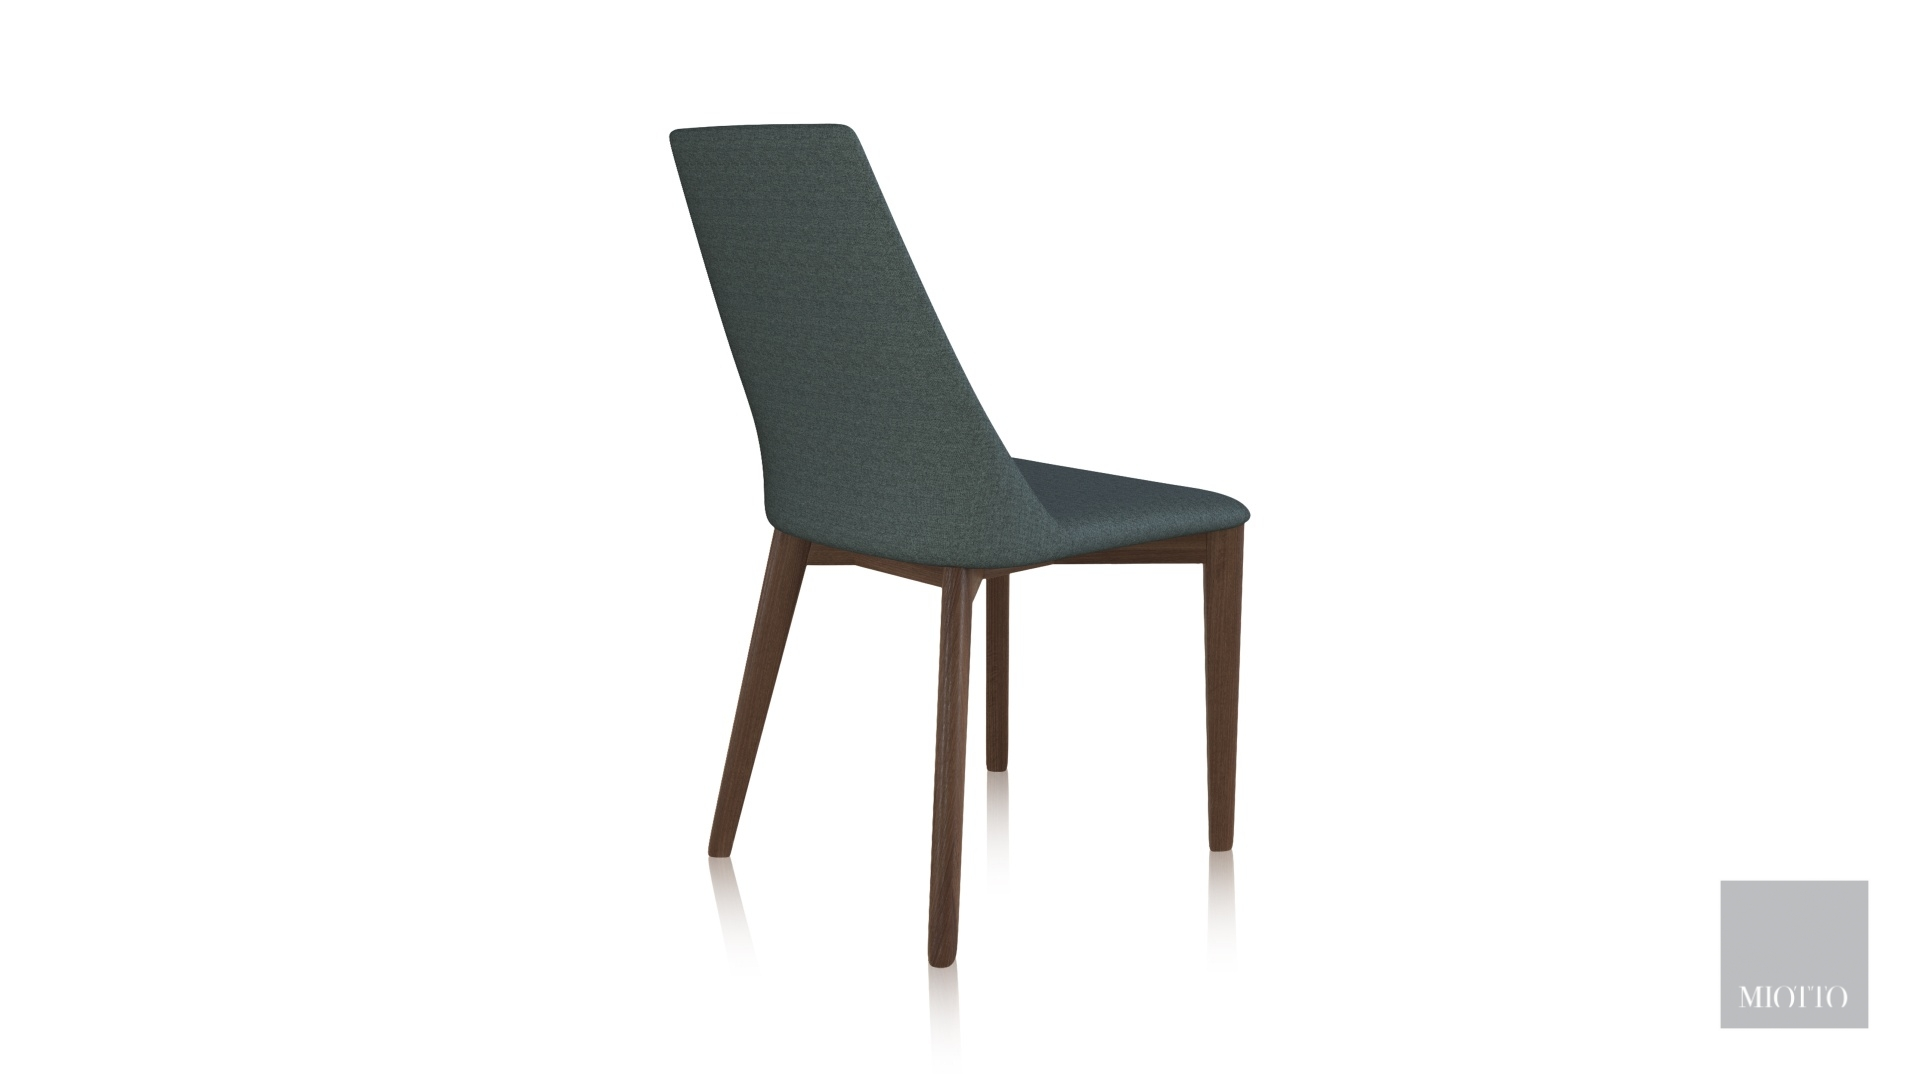 miotto_romolo DC dark grey back T miotto dining chair furniture